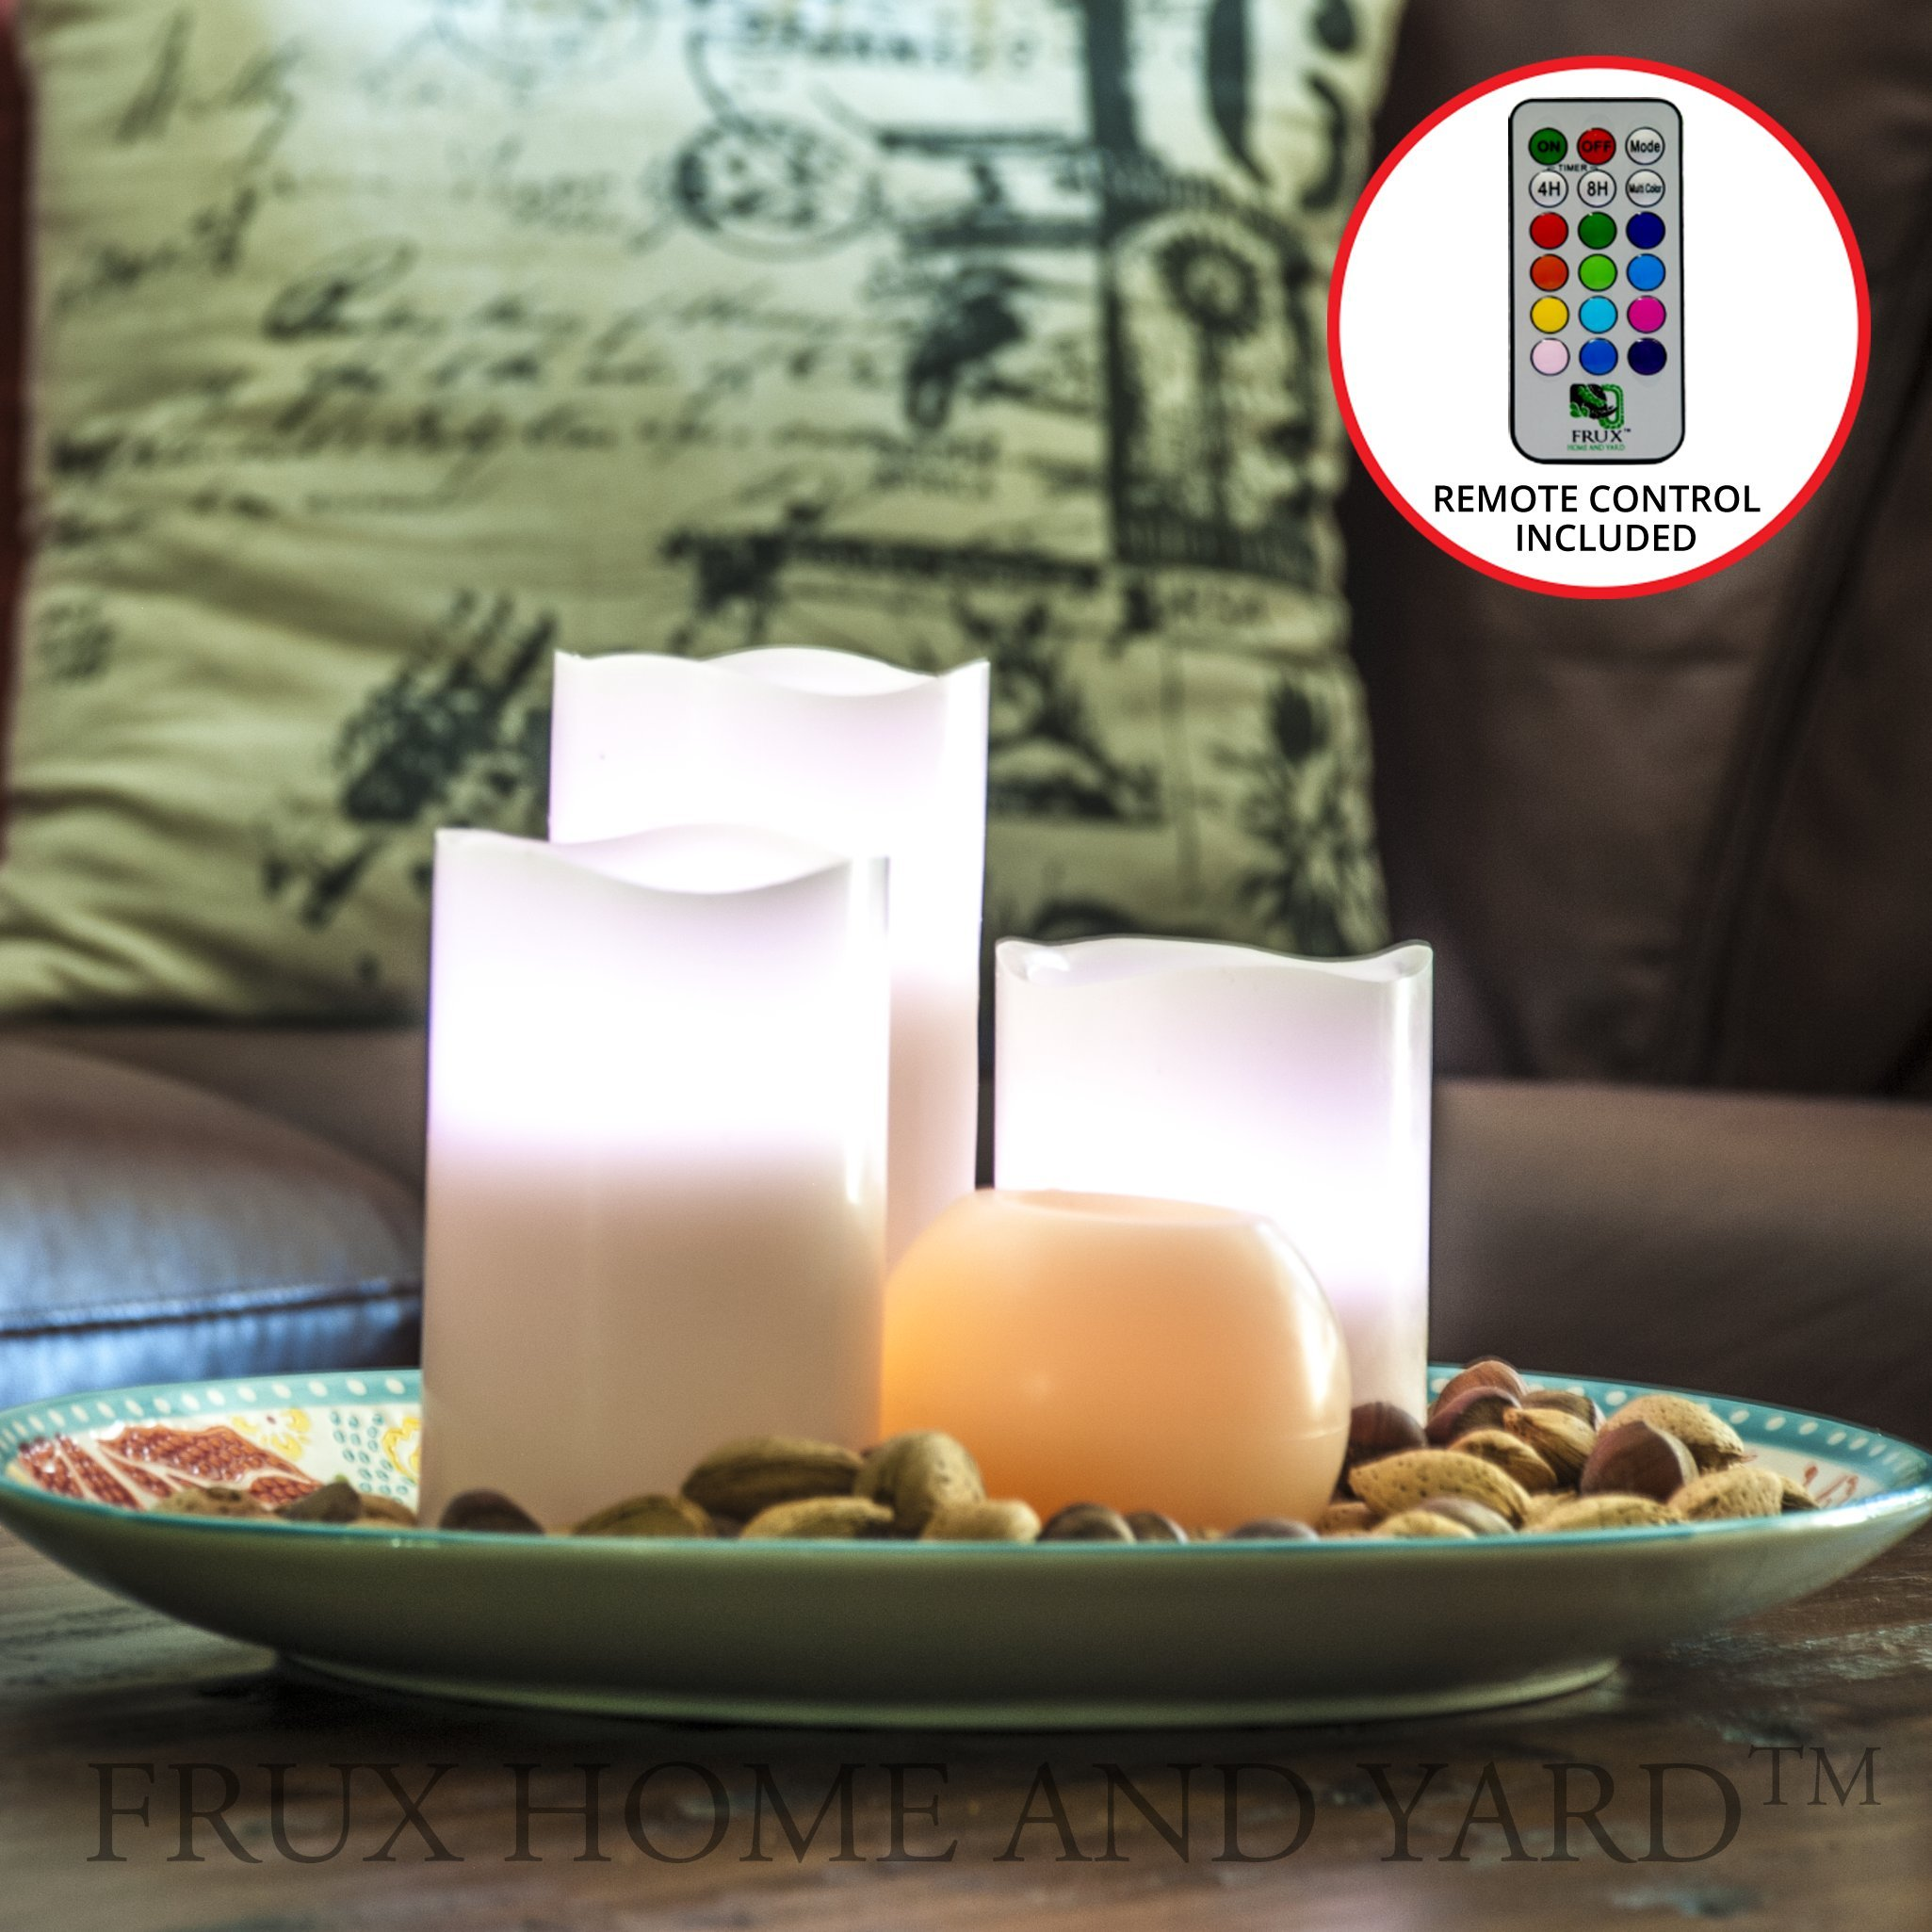 BEST FLAMELESS CANDLES WITH 12 COLOR, TIMER REMOTE CONTROL, Unscented Flickering Battery Operated Electric Candle for Home Decor, Weddings, Parties & Gifts, Set of 4' 5' 6' Pillars & BONUS Ball Candle by Frux Home and Yard (Image #2)